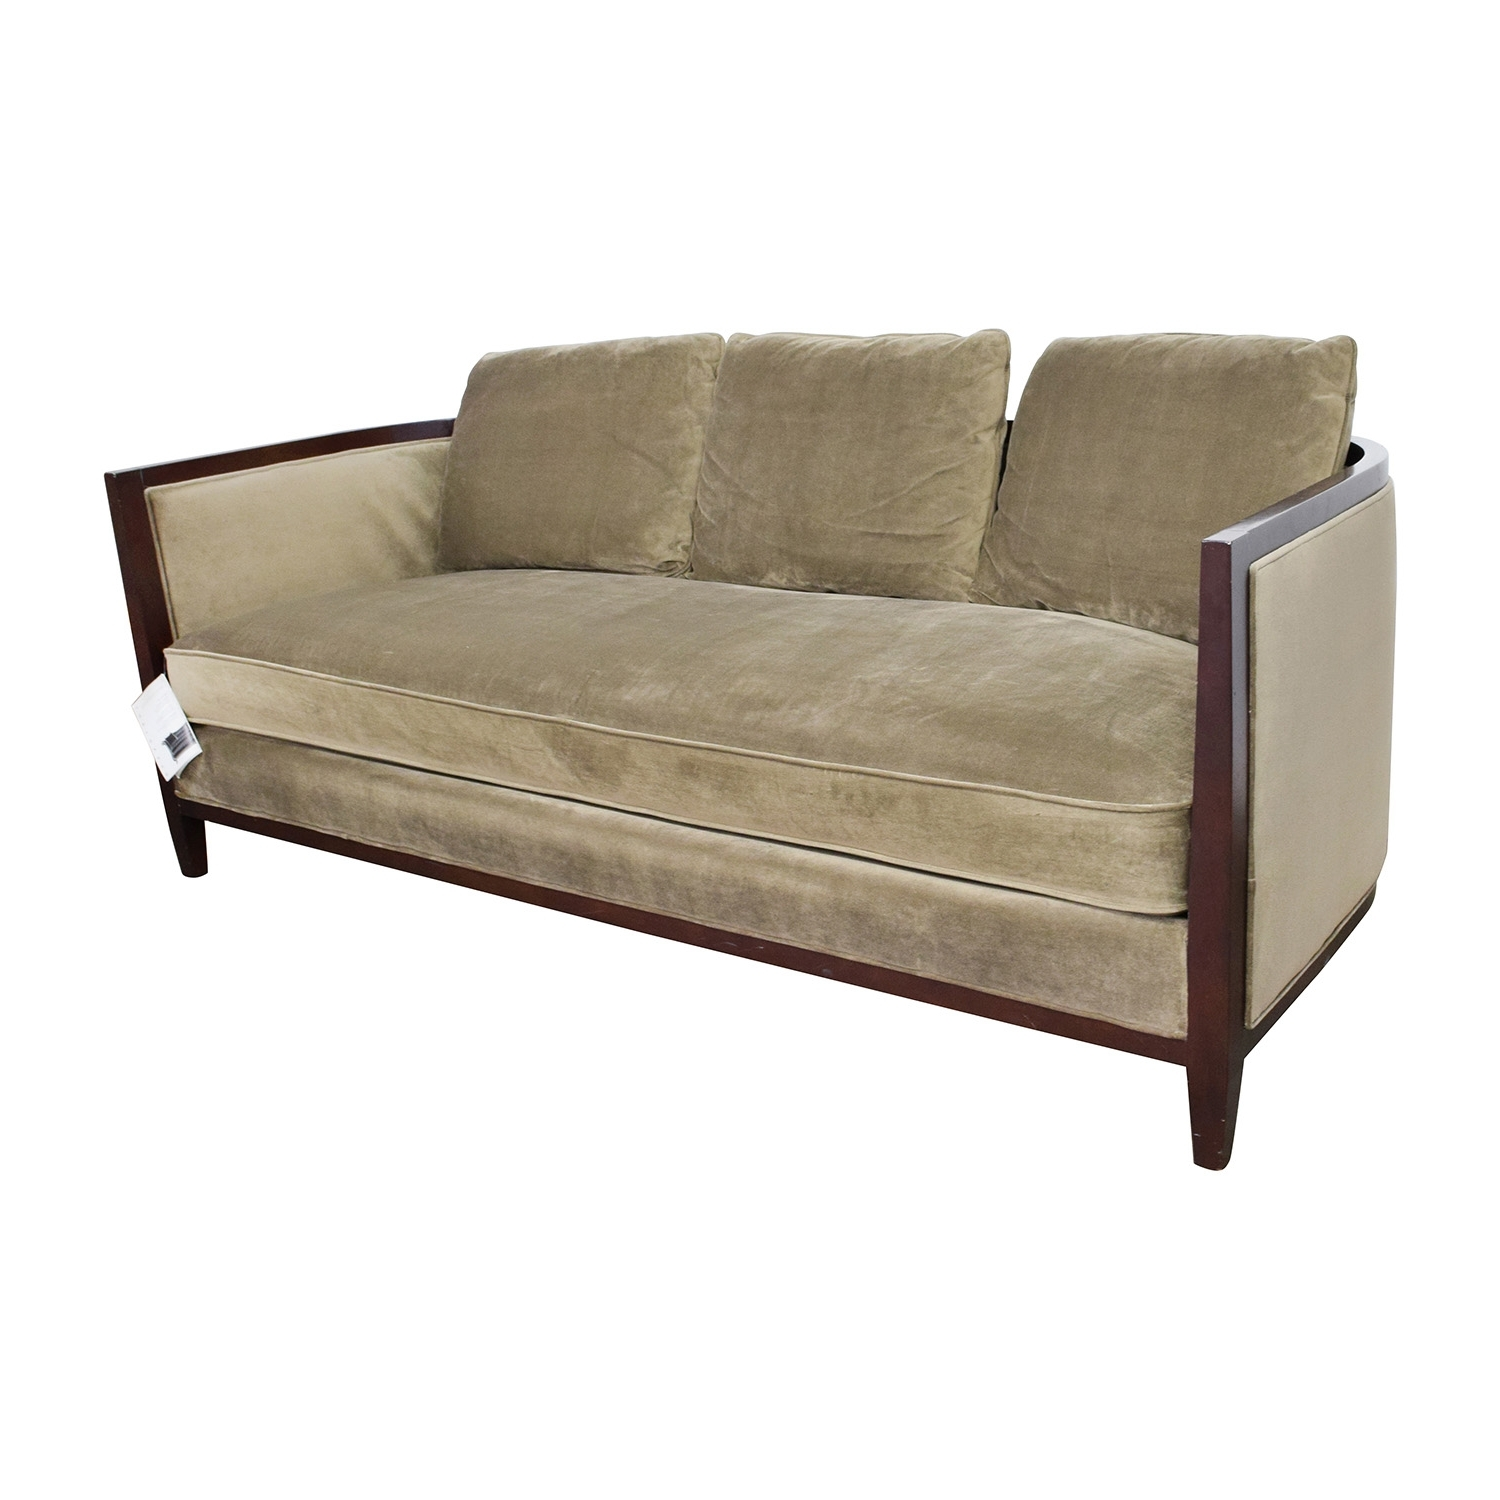 [%85% Off – Bernhardt Bernhardt Tan Single Cushion Sofa / Sofas Throughout Favorite One Cushion Sofas|One Cushion Sofas Regarding Most Popular 85% Off – Bernhardt Bernhardt Tan Single Cushion Sofa / Sofas|Widely Used One Cushion Sofas With 85% Off – Bernhardt Bernhardt Tan Single Cushion Sofa / Sofas|Well Known 85% Off – Bernhardt Bernhardt Tan Single Cushion Sofa / Sofas In One Cushion Sofas%] (View 2 of 20)